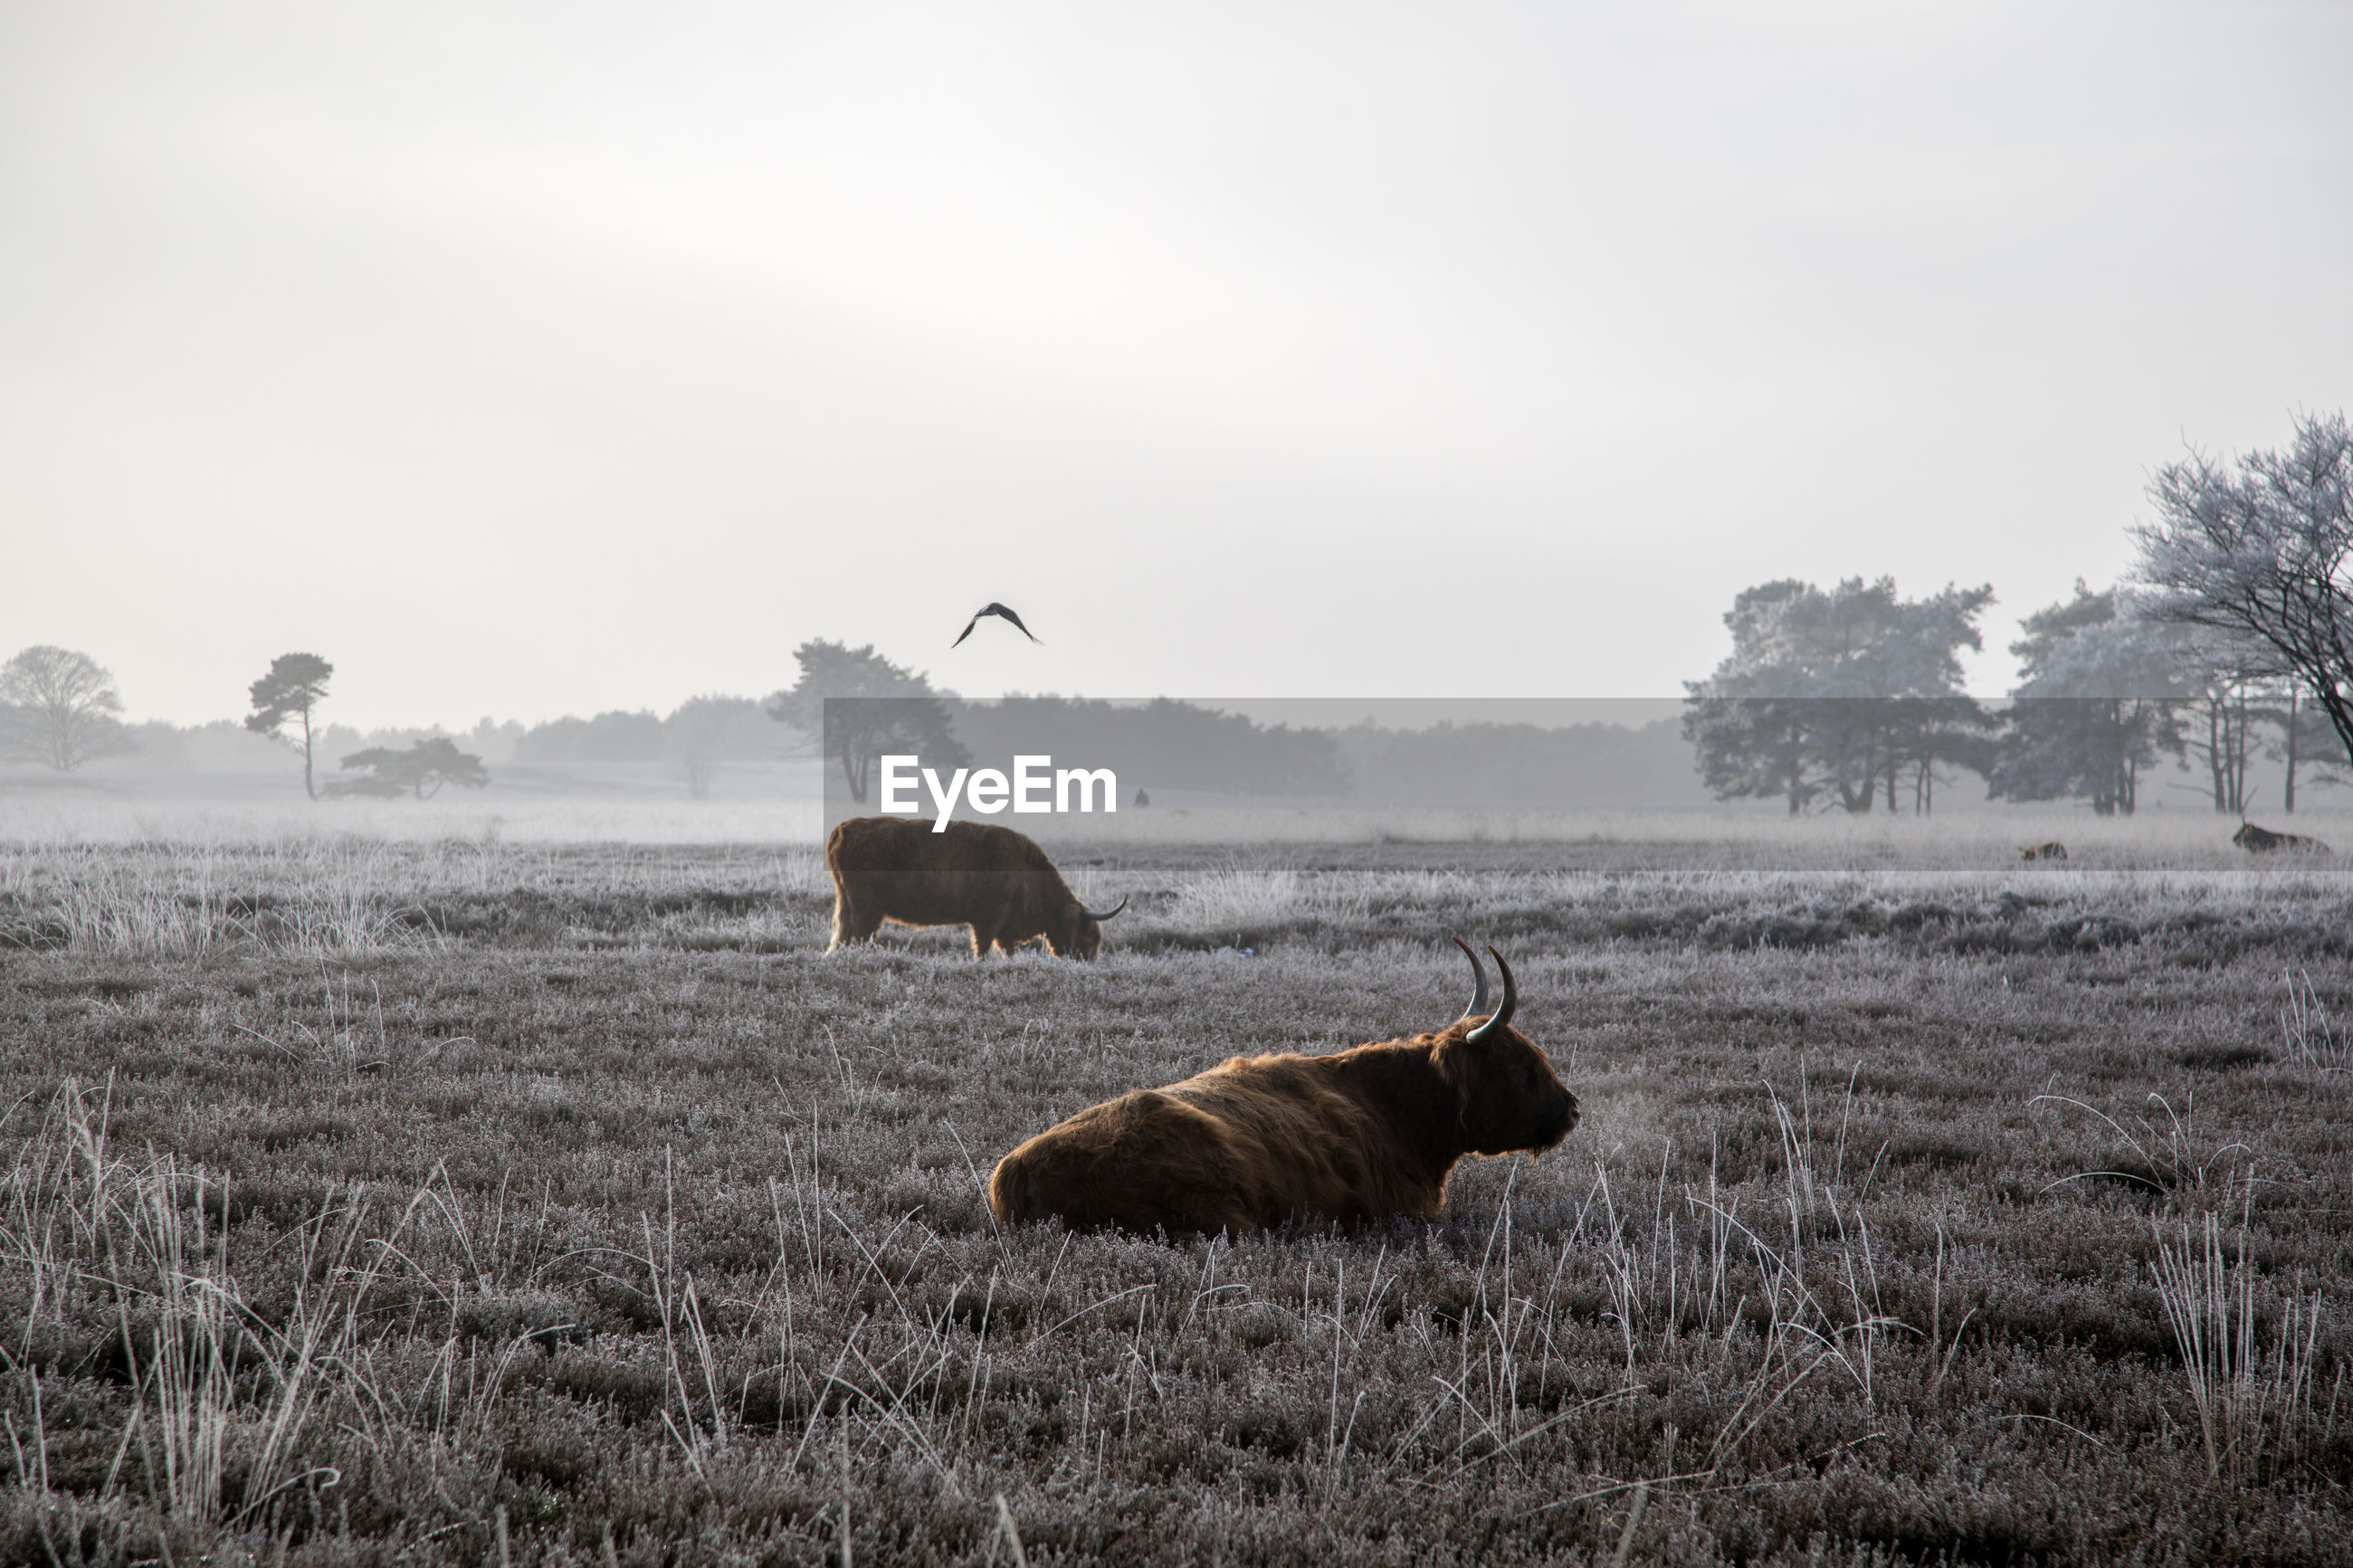 American bison on field against sky during winter